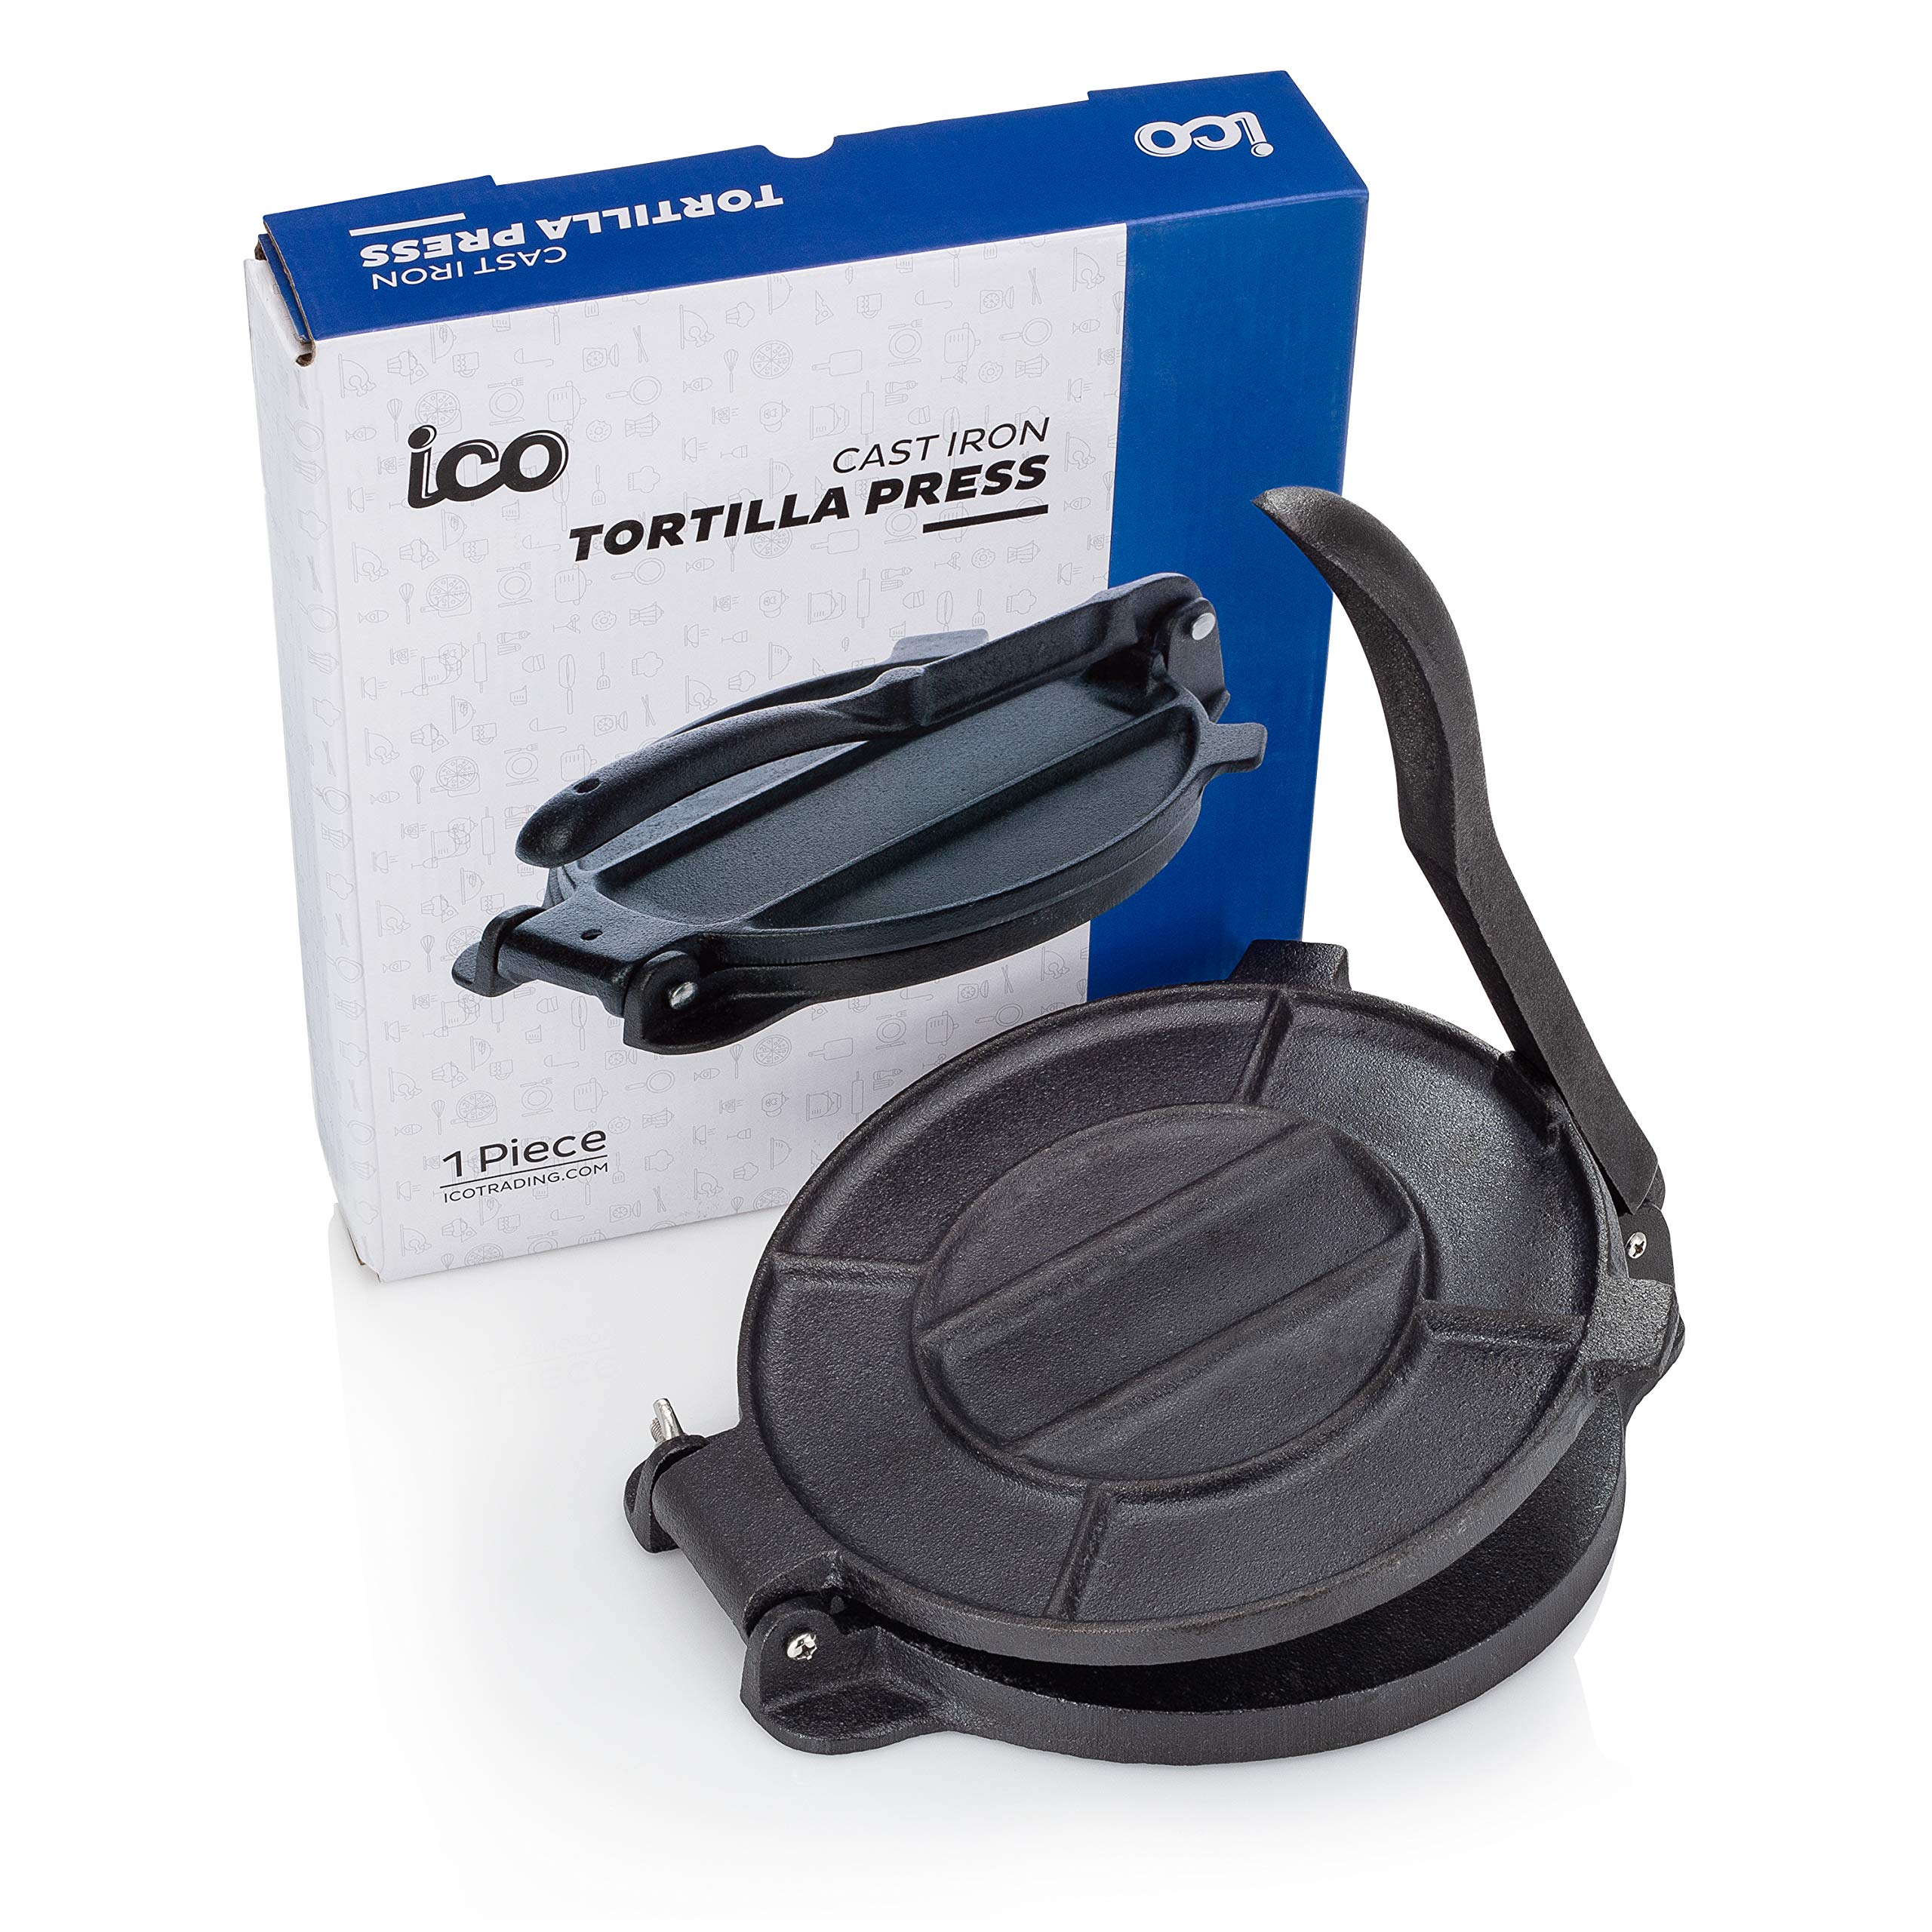 Cast Iron Tortilla Press, Tortilla, Roti, and Flatbread Maker (Pre-Seasoned) - makes fresh Corn or Flour Tortillas for grilling by Impeccable Culinary Objects (ICO) (Image #1)